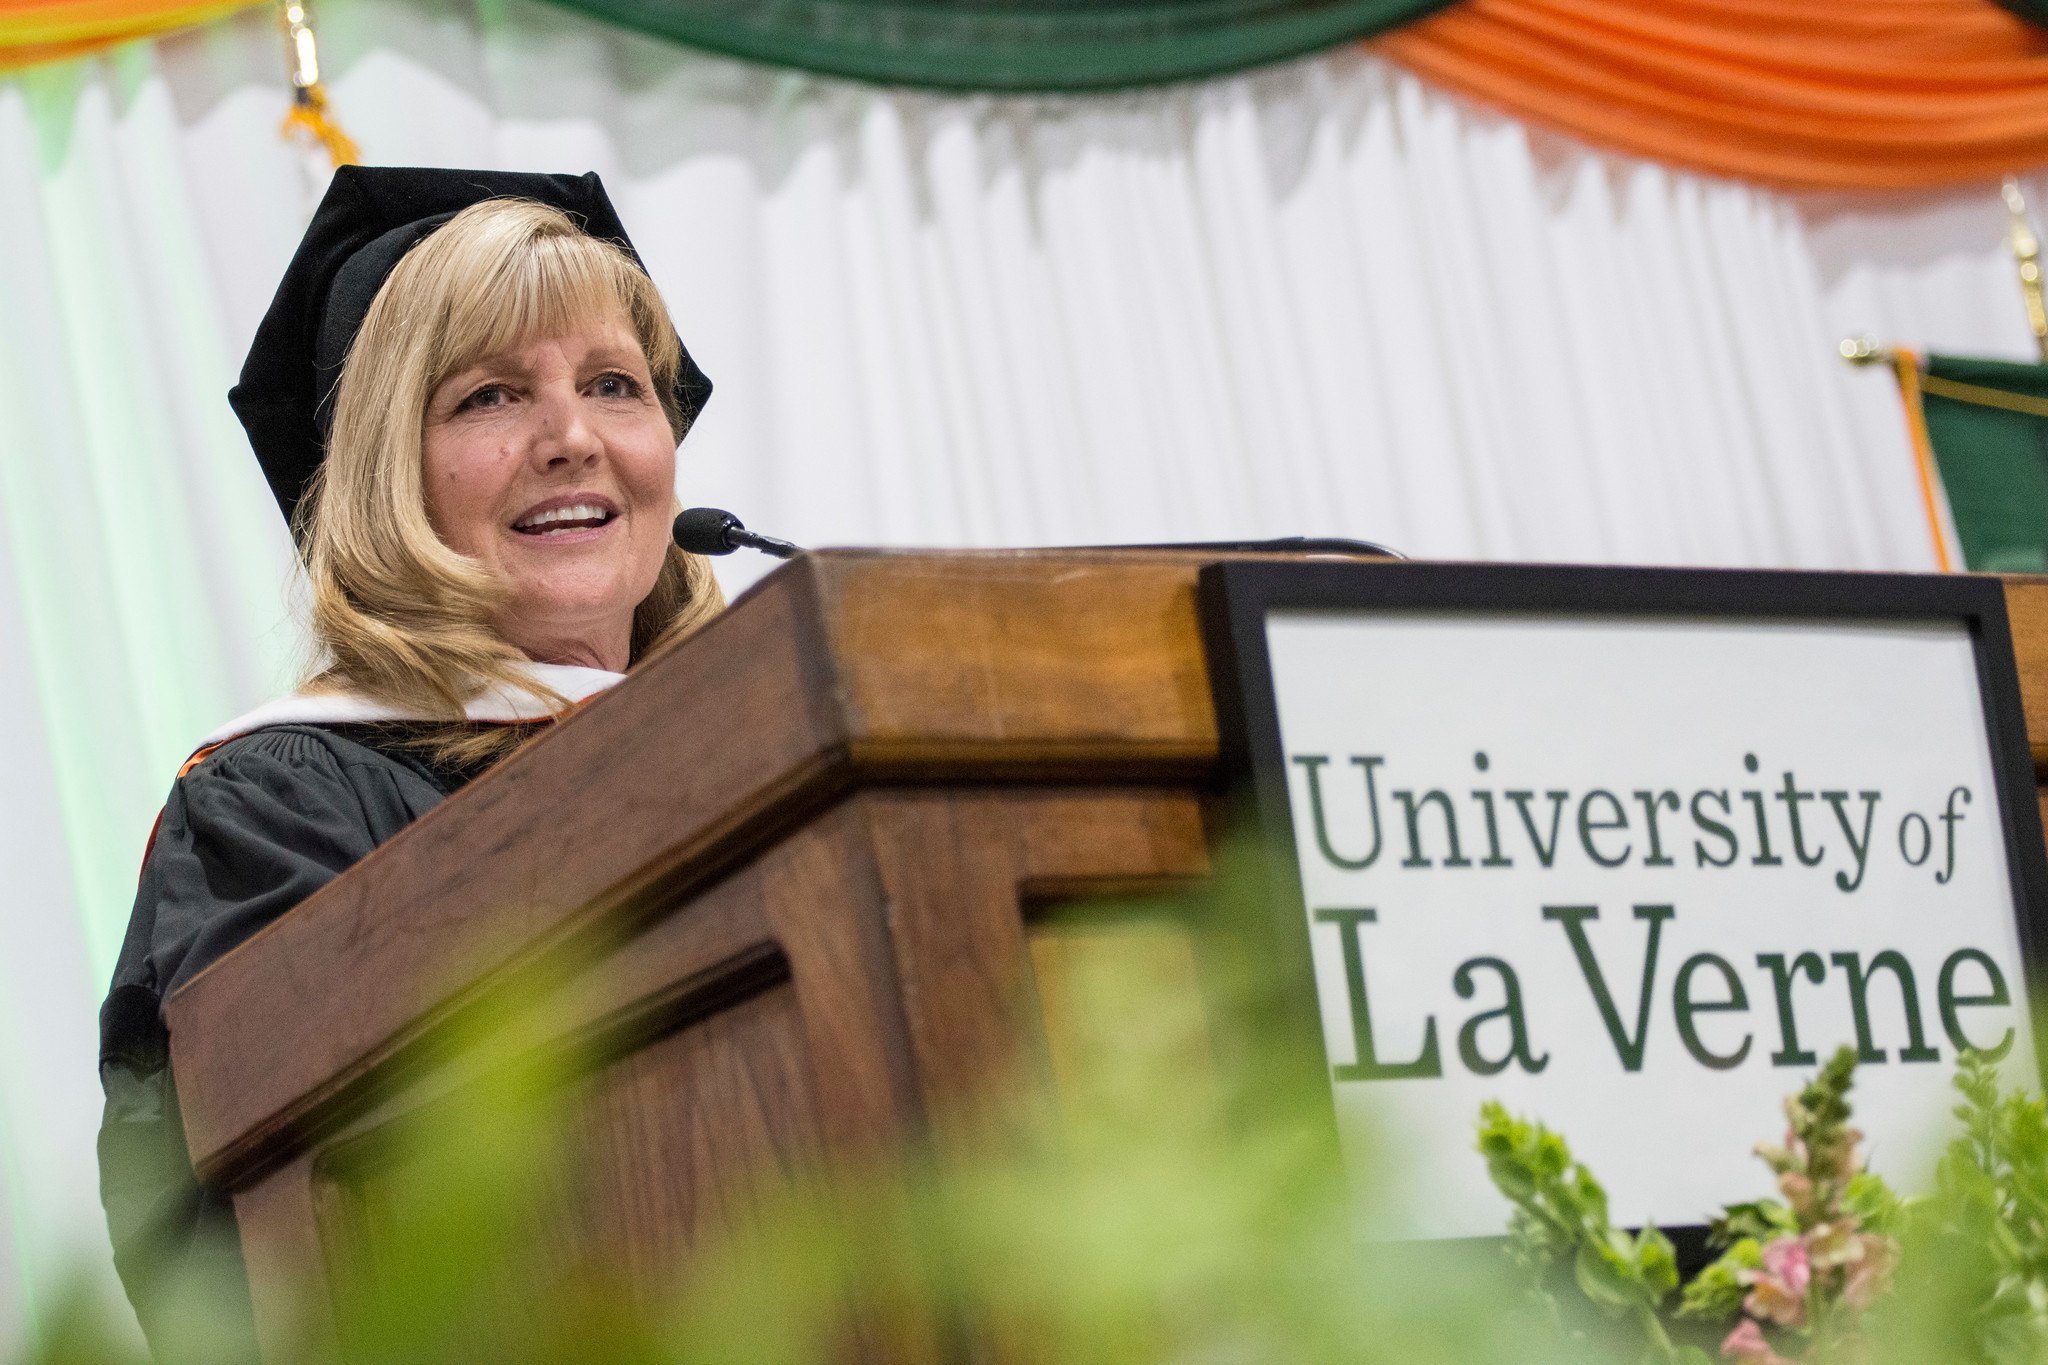 Julie Miller-Phipps at University of La Verne commencement winter 2020